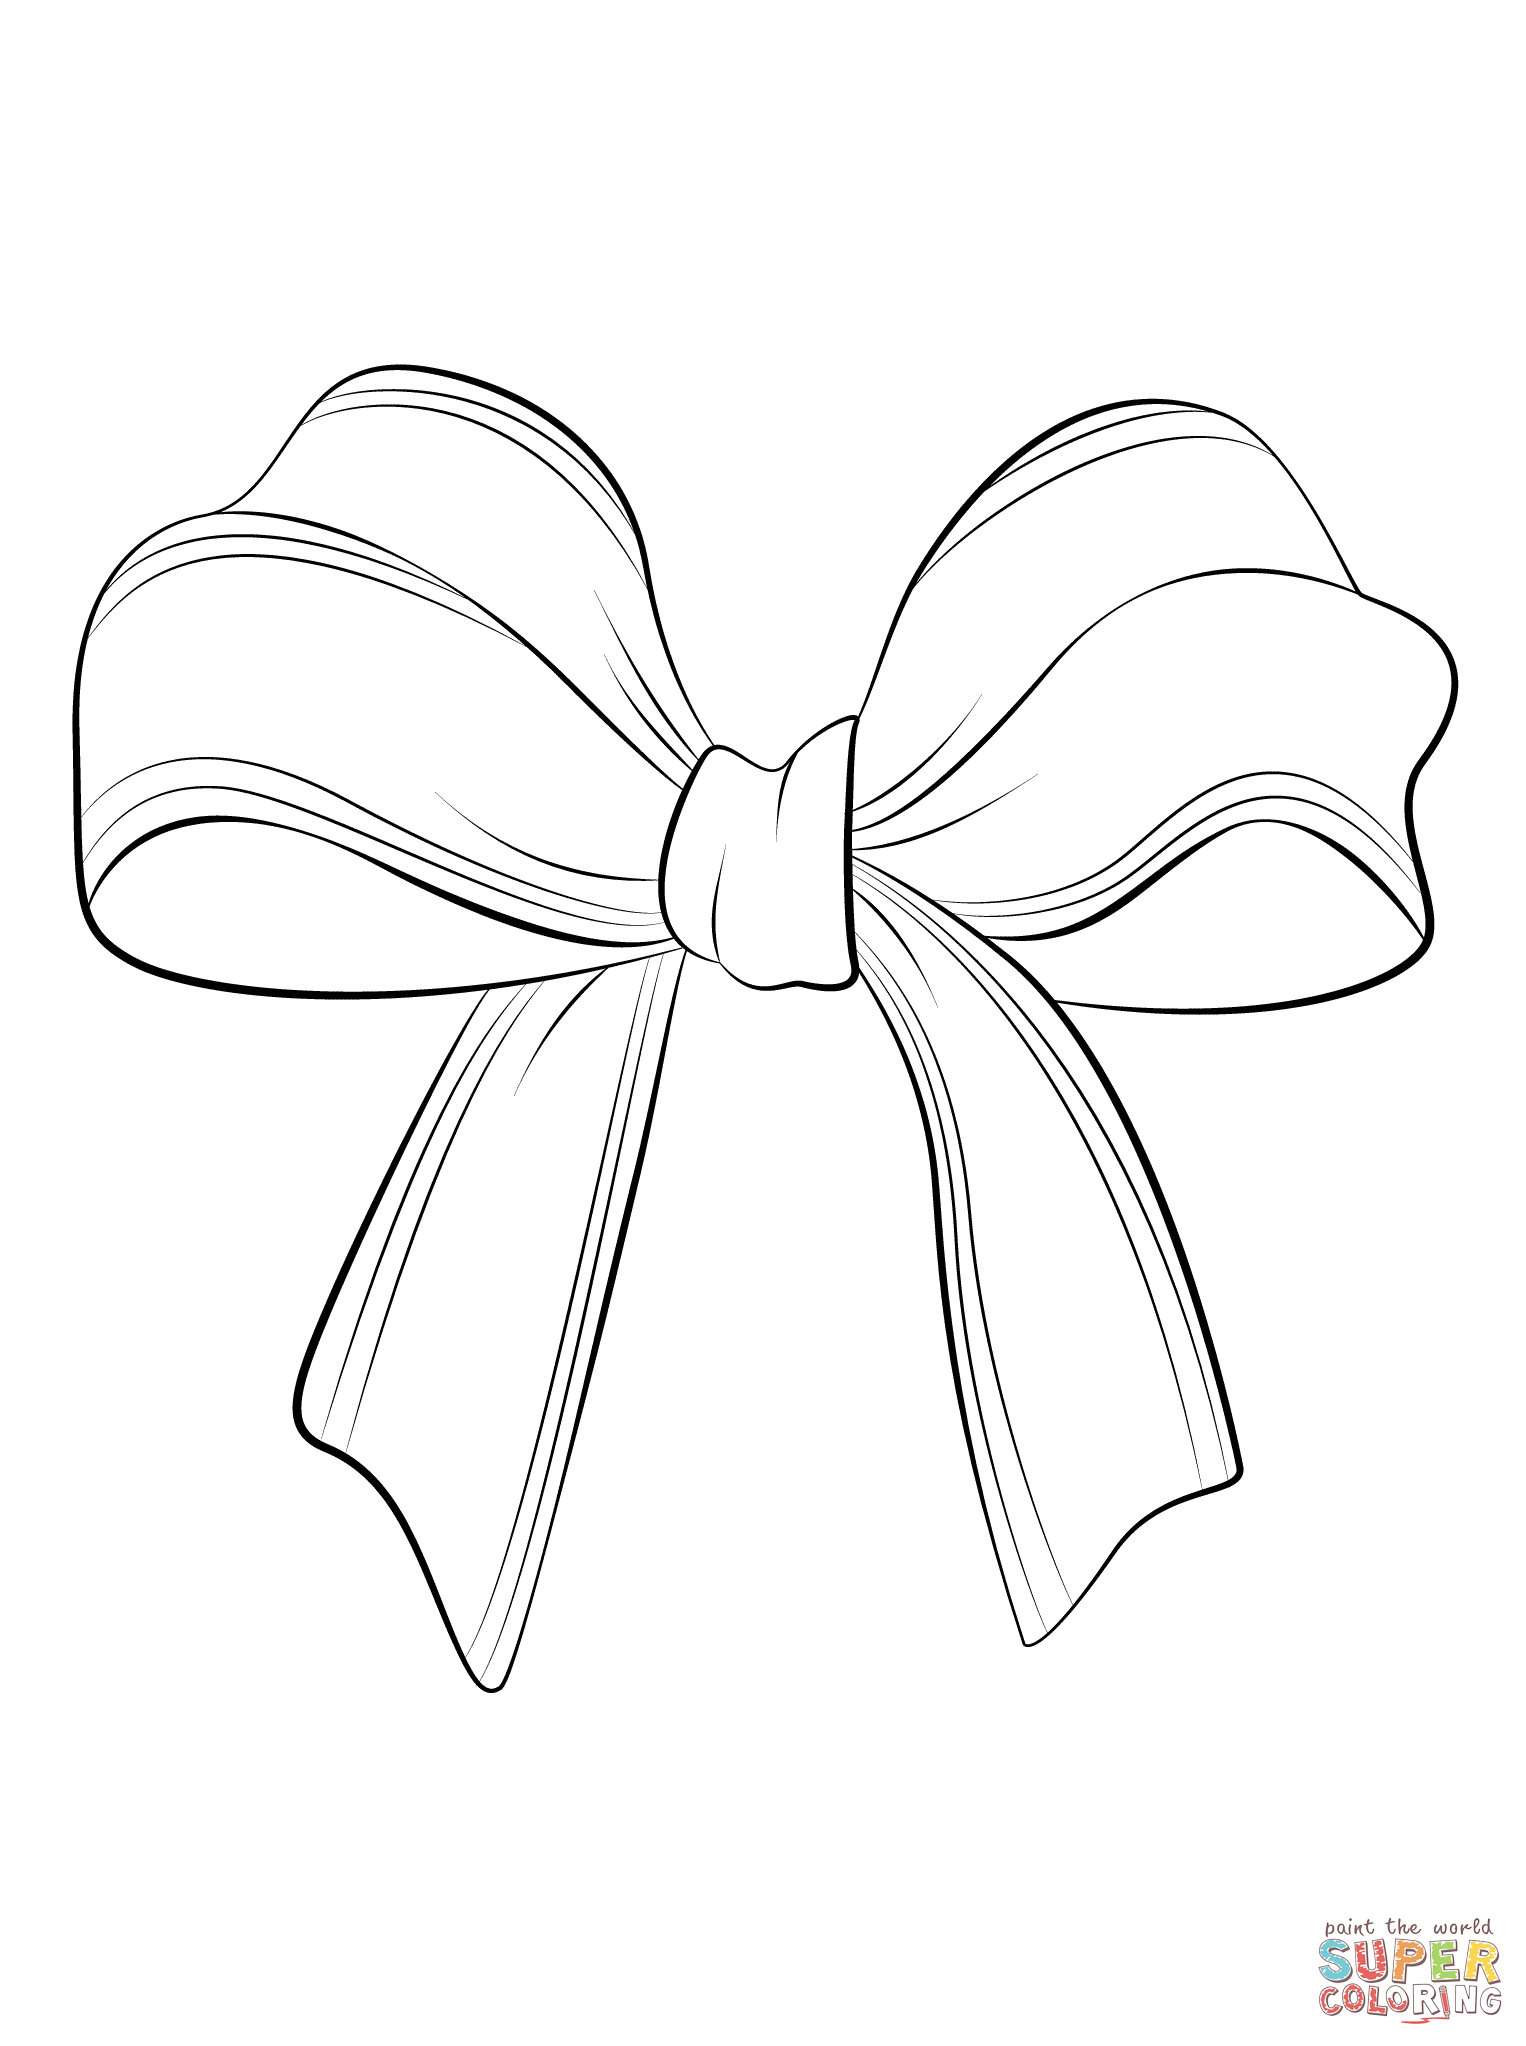 Bow coloring #12, Download drawings